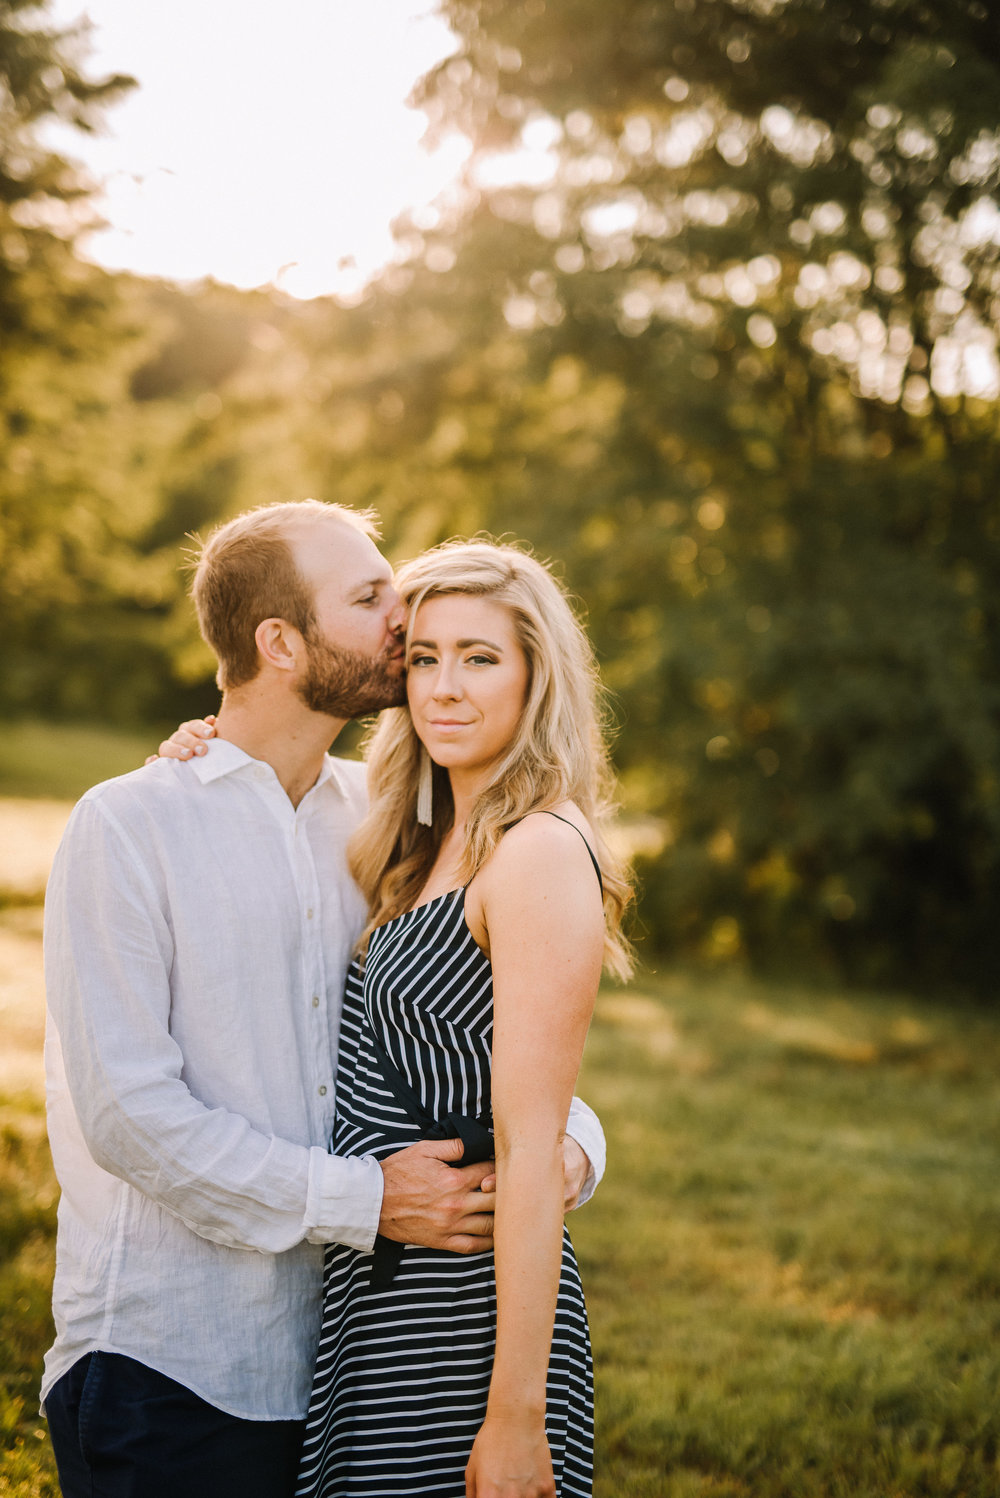 Meredith & Michael_Broad Ave_Shelby Farms_Ashley Benham Photography-142.jpg